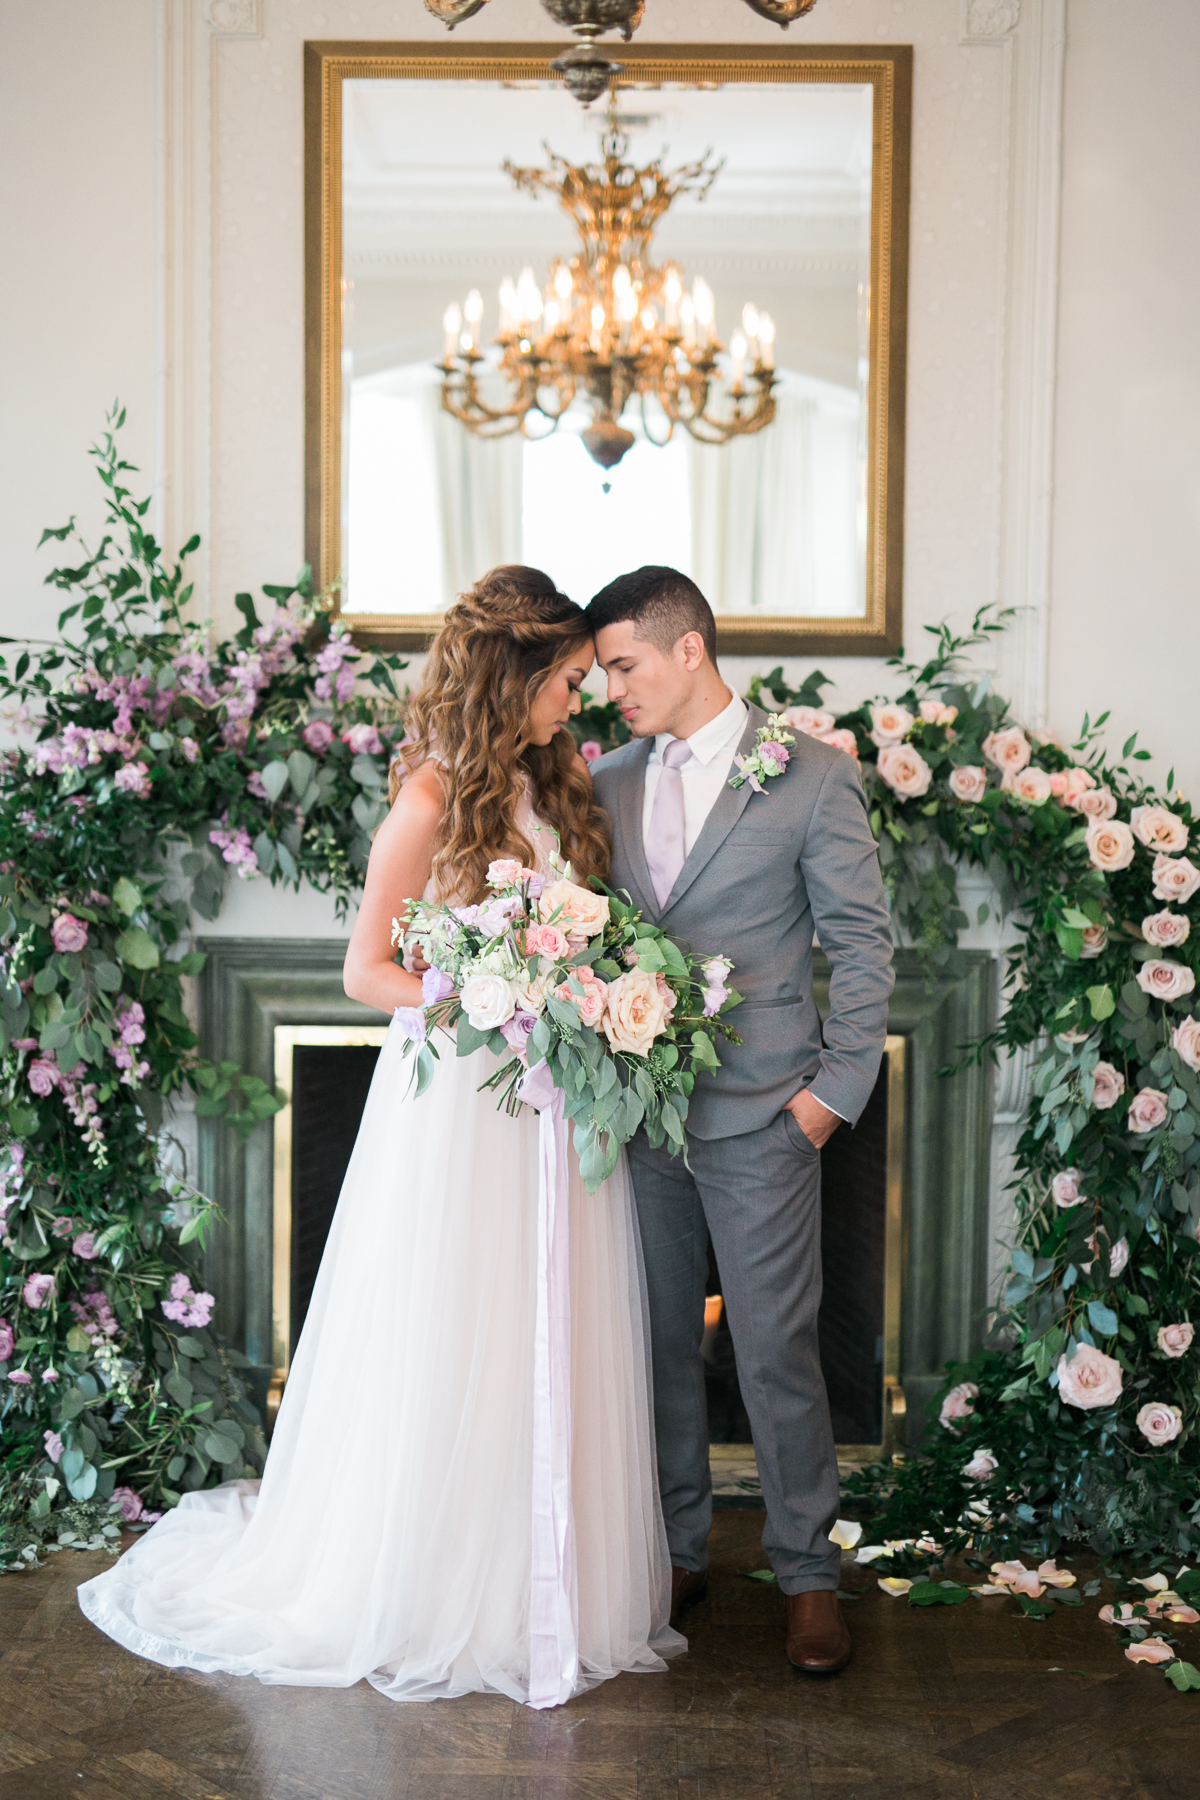 August In Bloom - Bride and Groom at Ceremony - Fairytale Wedding